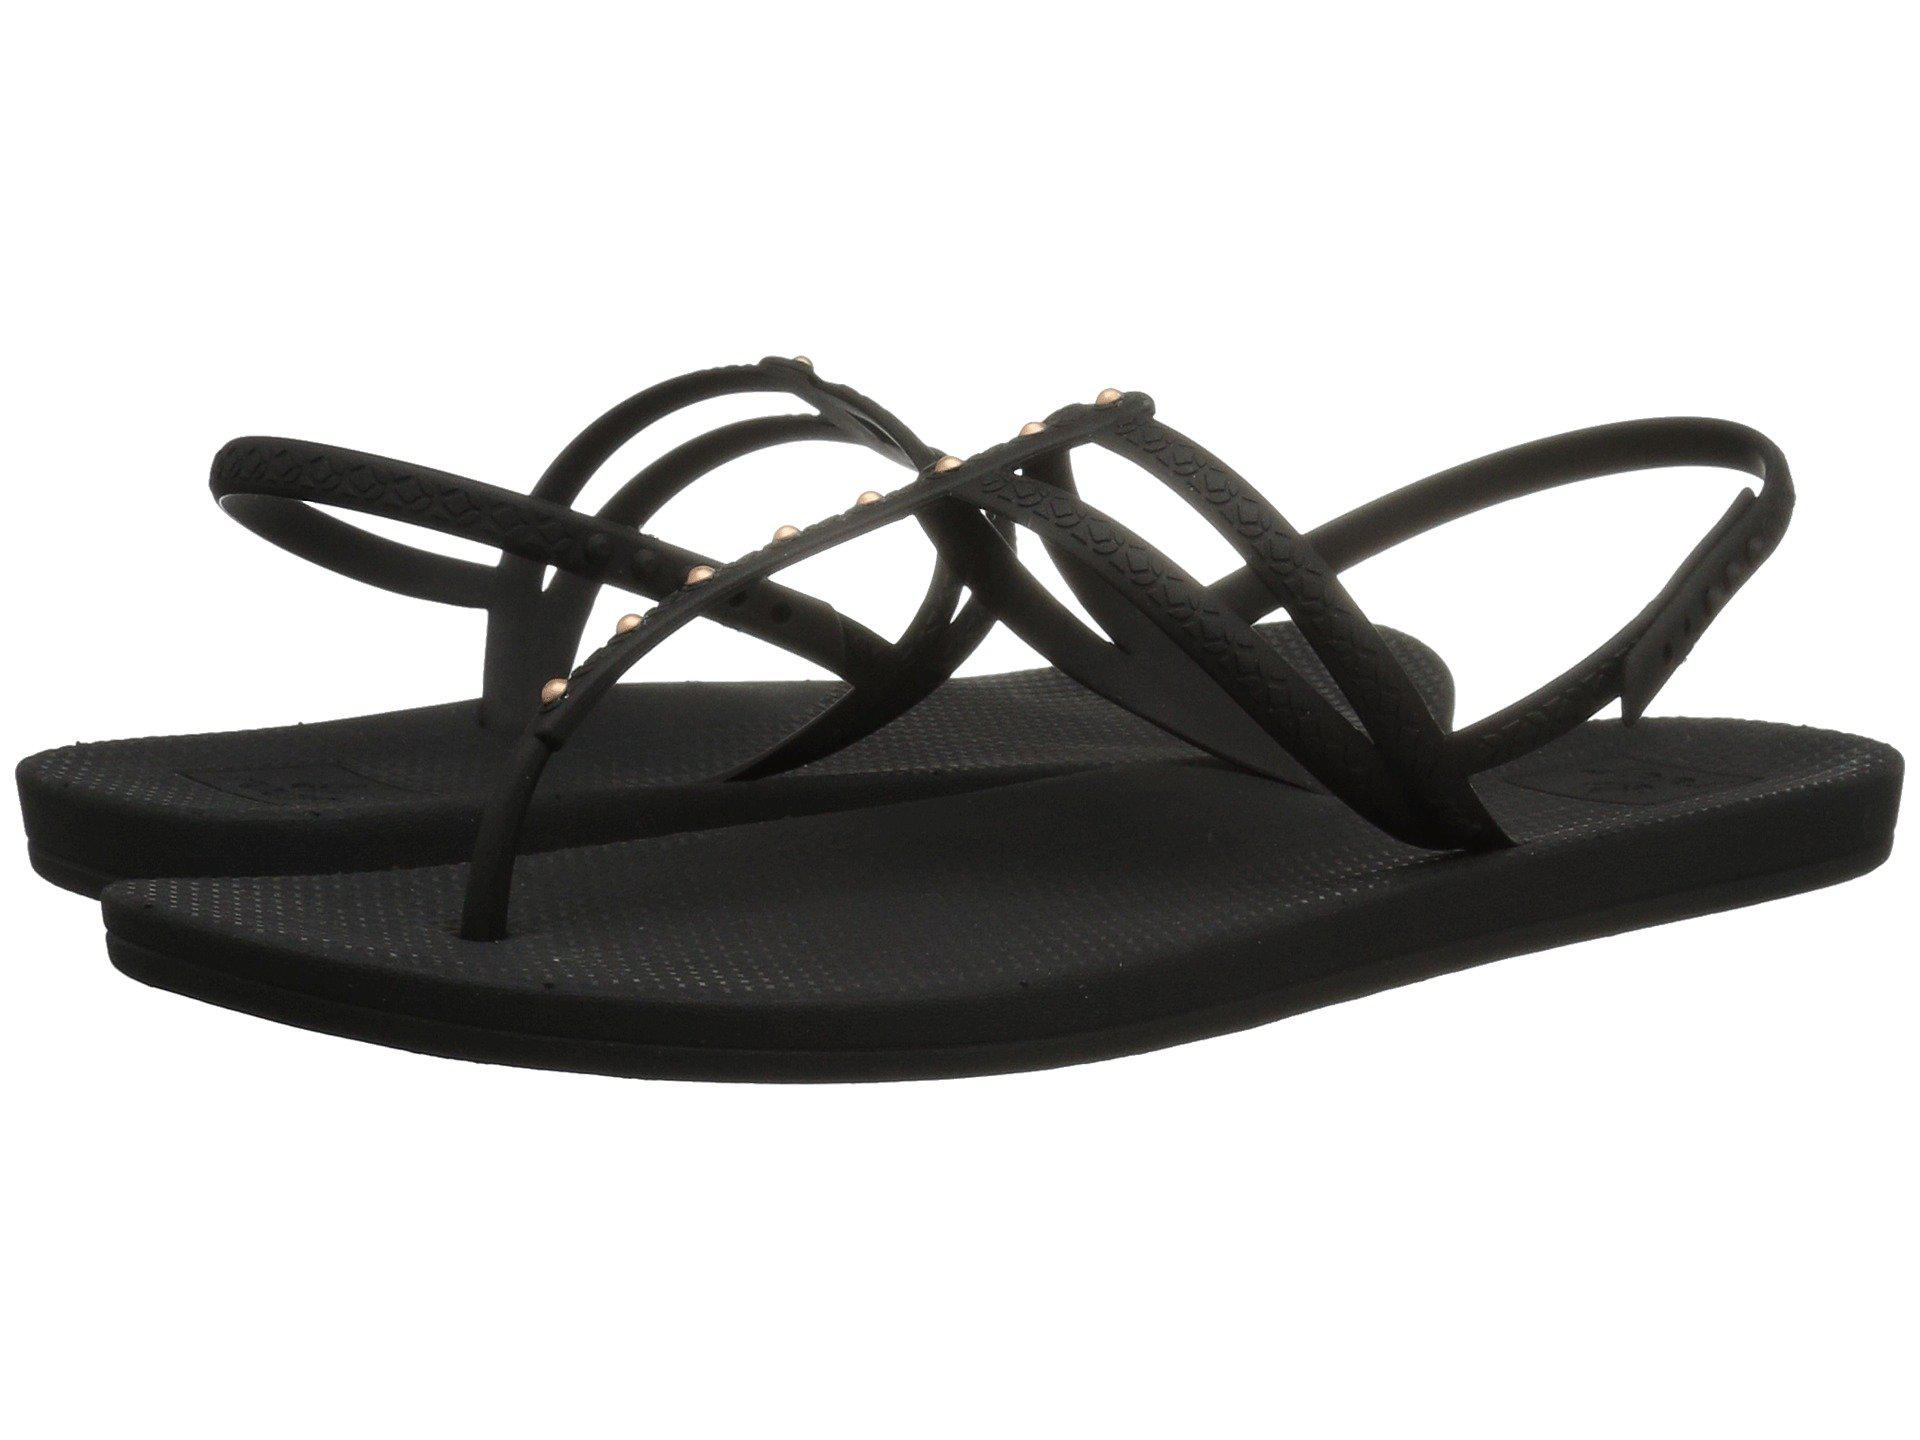 dfad46152f1d Lyst - Reef Escape Lux T Stud (antique Black) Women s Sandals in Black